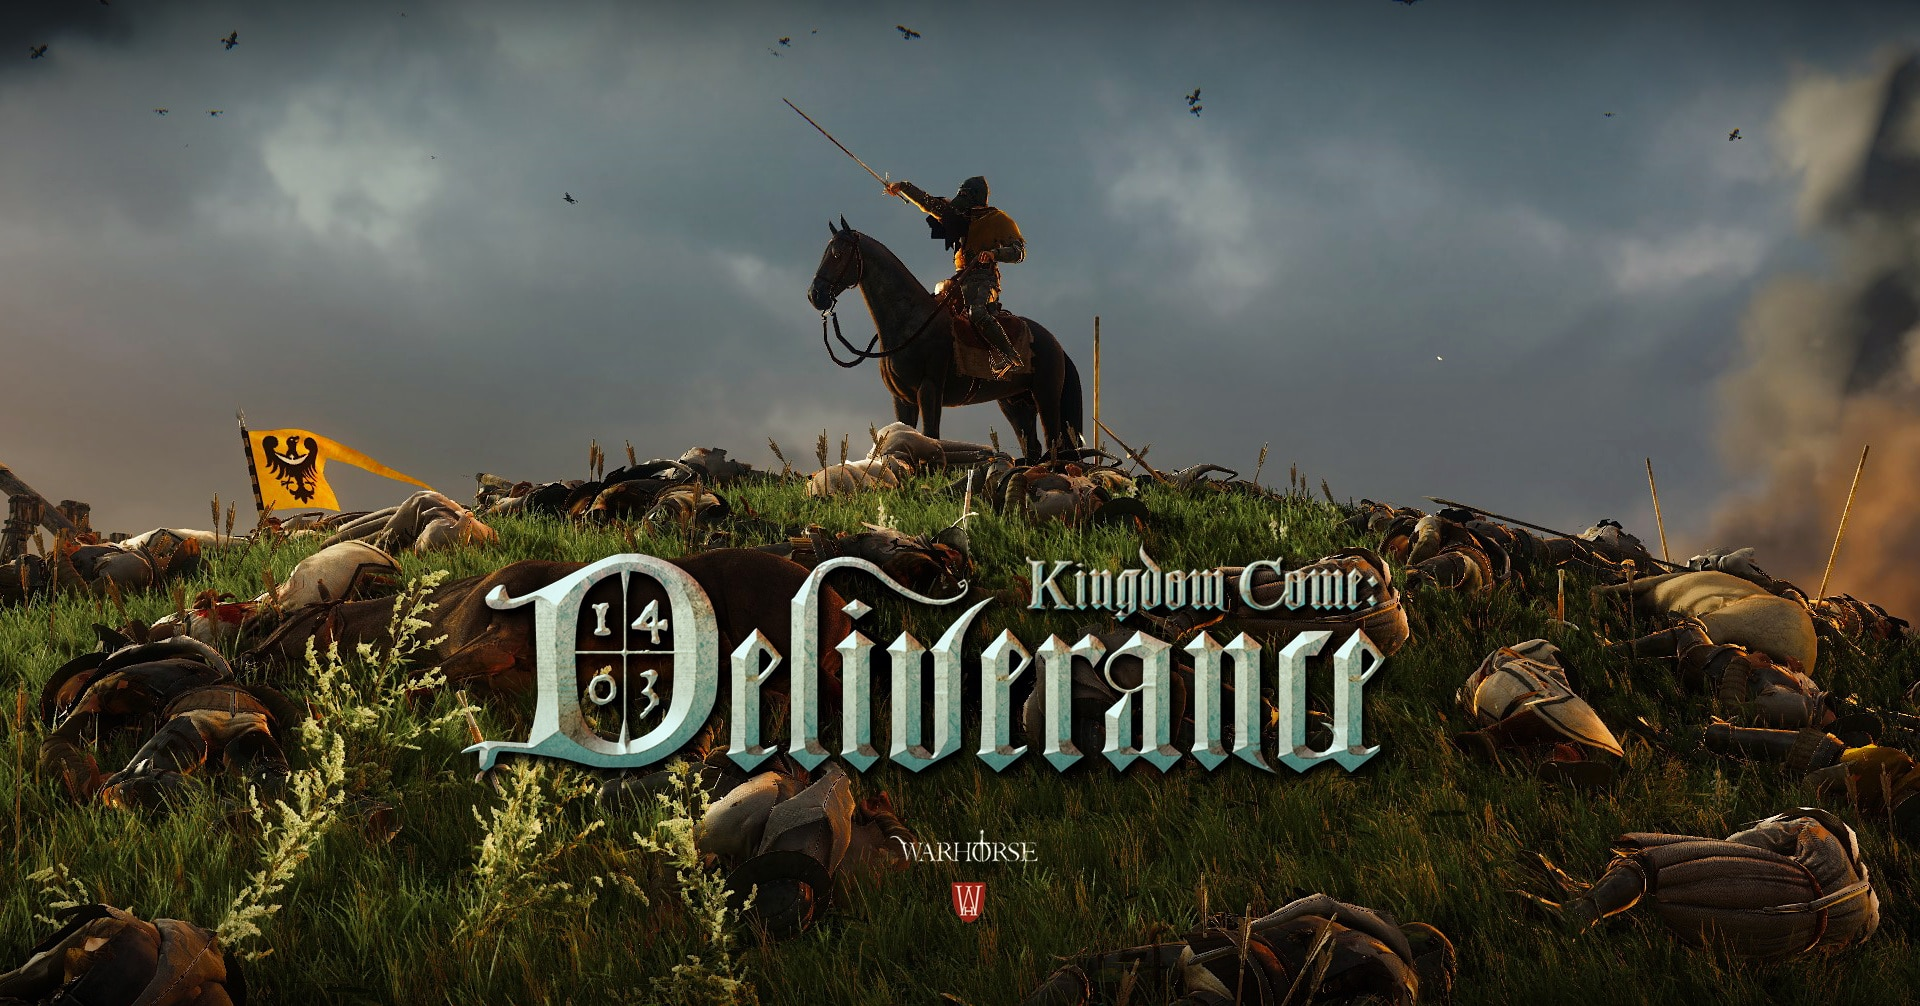 Photo of Das neue Mittelalter-RPG der Gamescom: Kingdom Come Deliverance